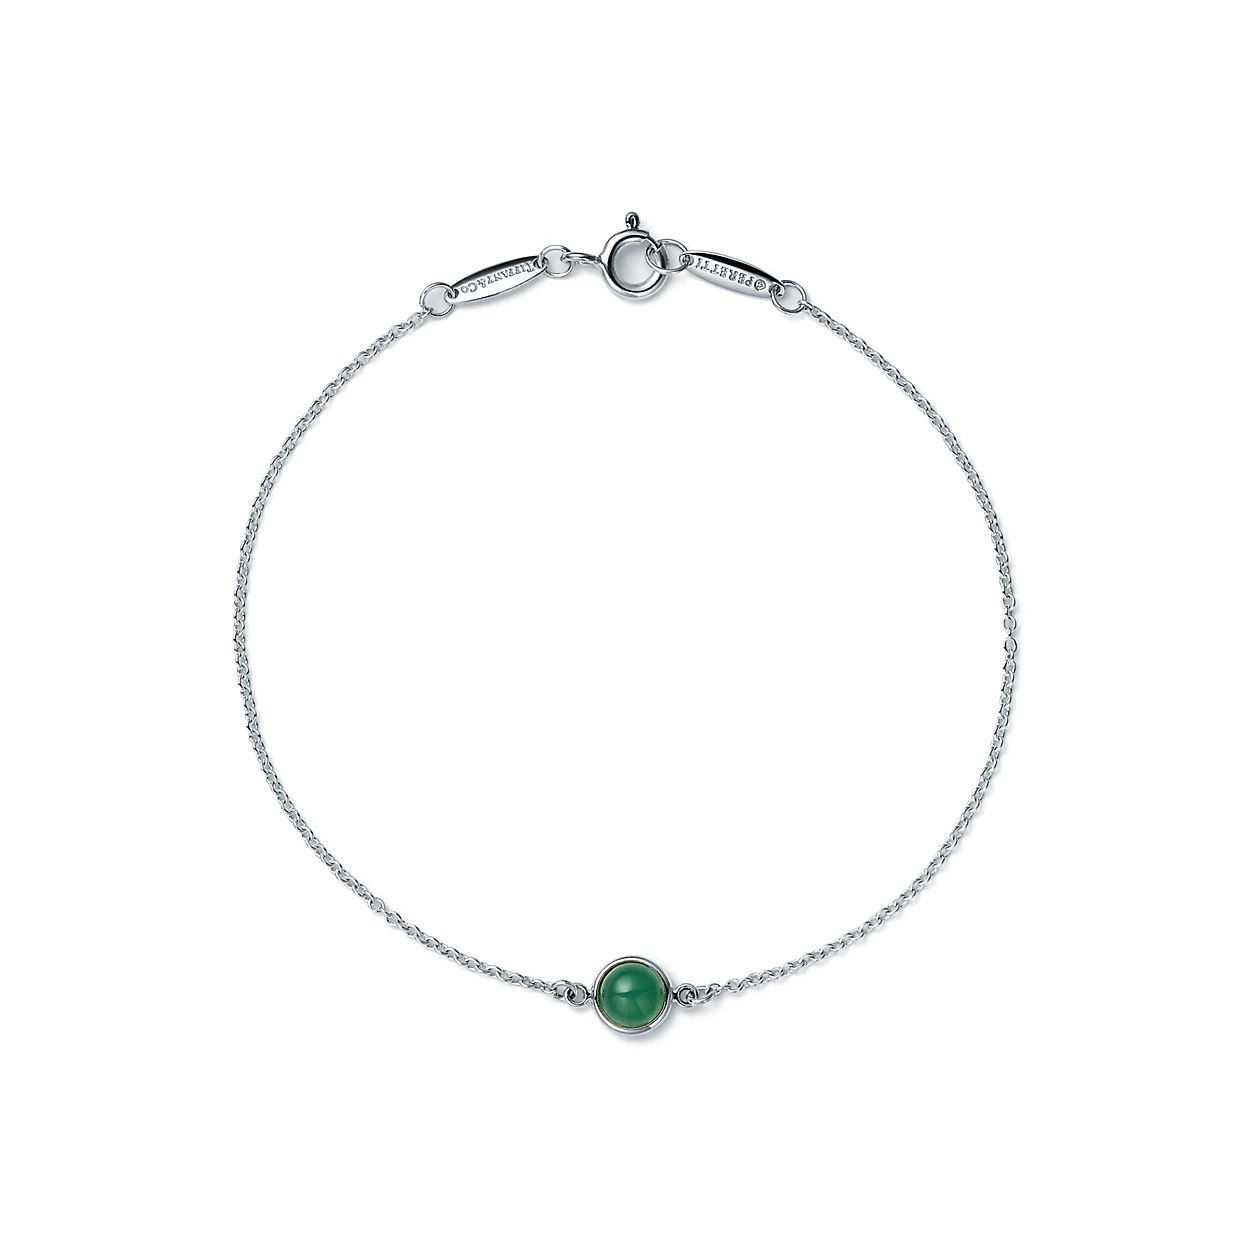 Elsa Peretti Color by the Yard bracelet in silver with green aventurine Tiffany & Co. UPGIGN